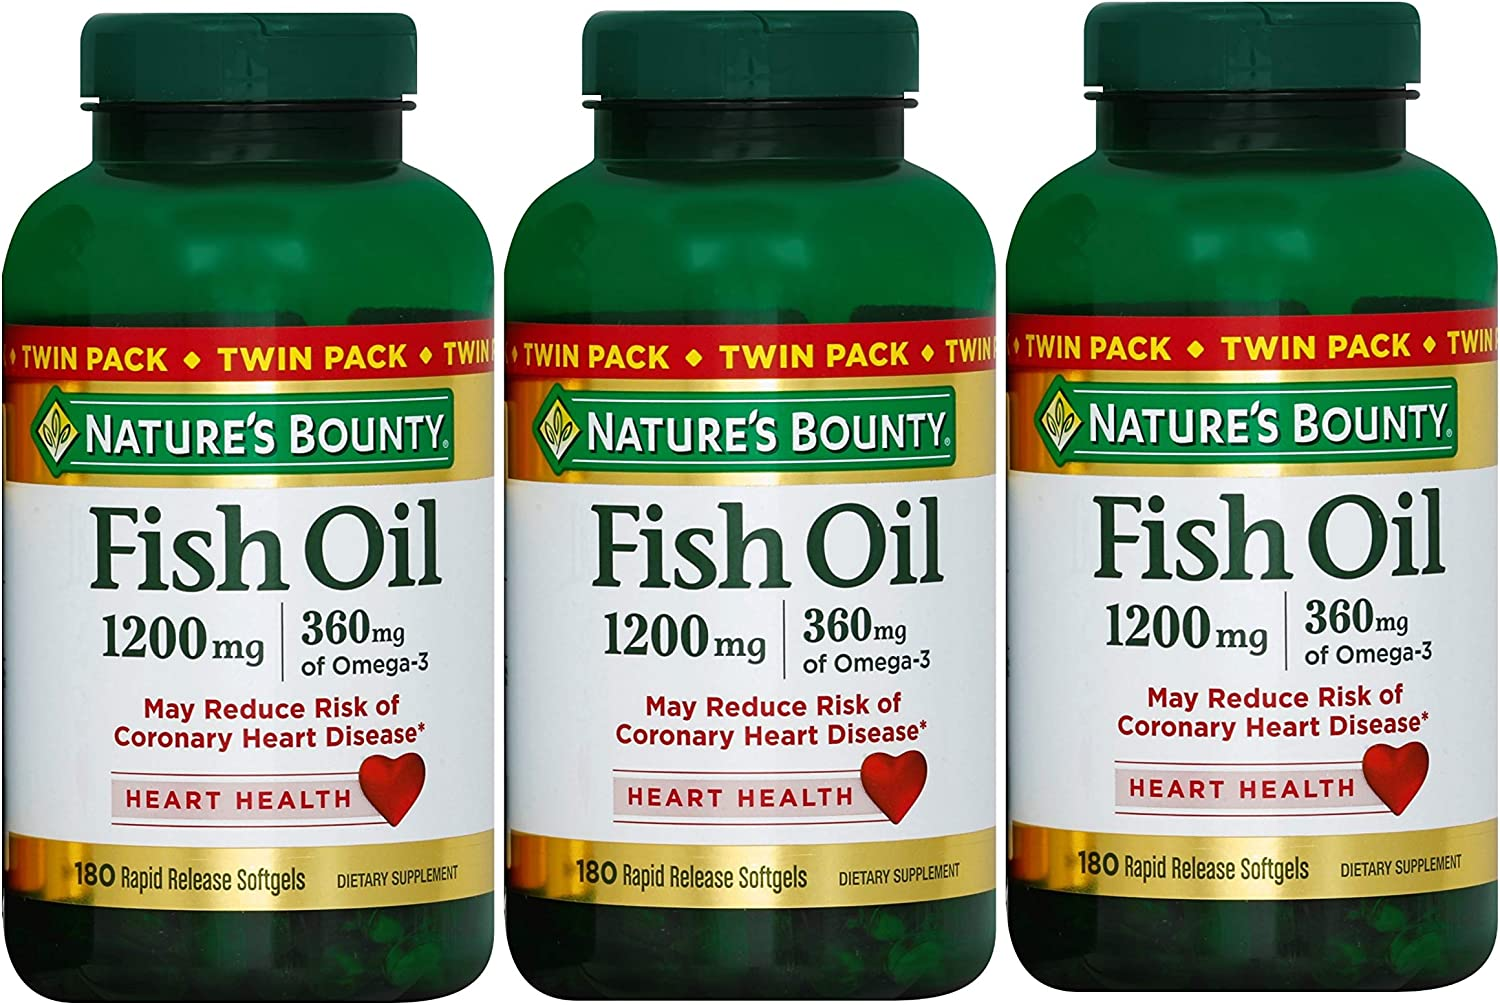 Nature's Bounty Fish Oil 1200 mg Twin Packs, 180-Count per Bottle (540 Total Count) Rapid Release Liquid Softgels